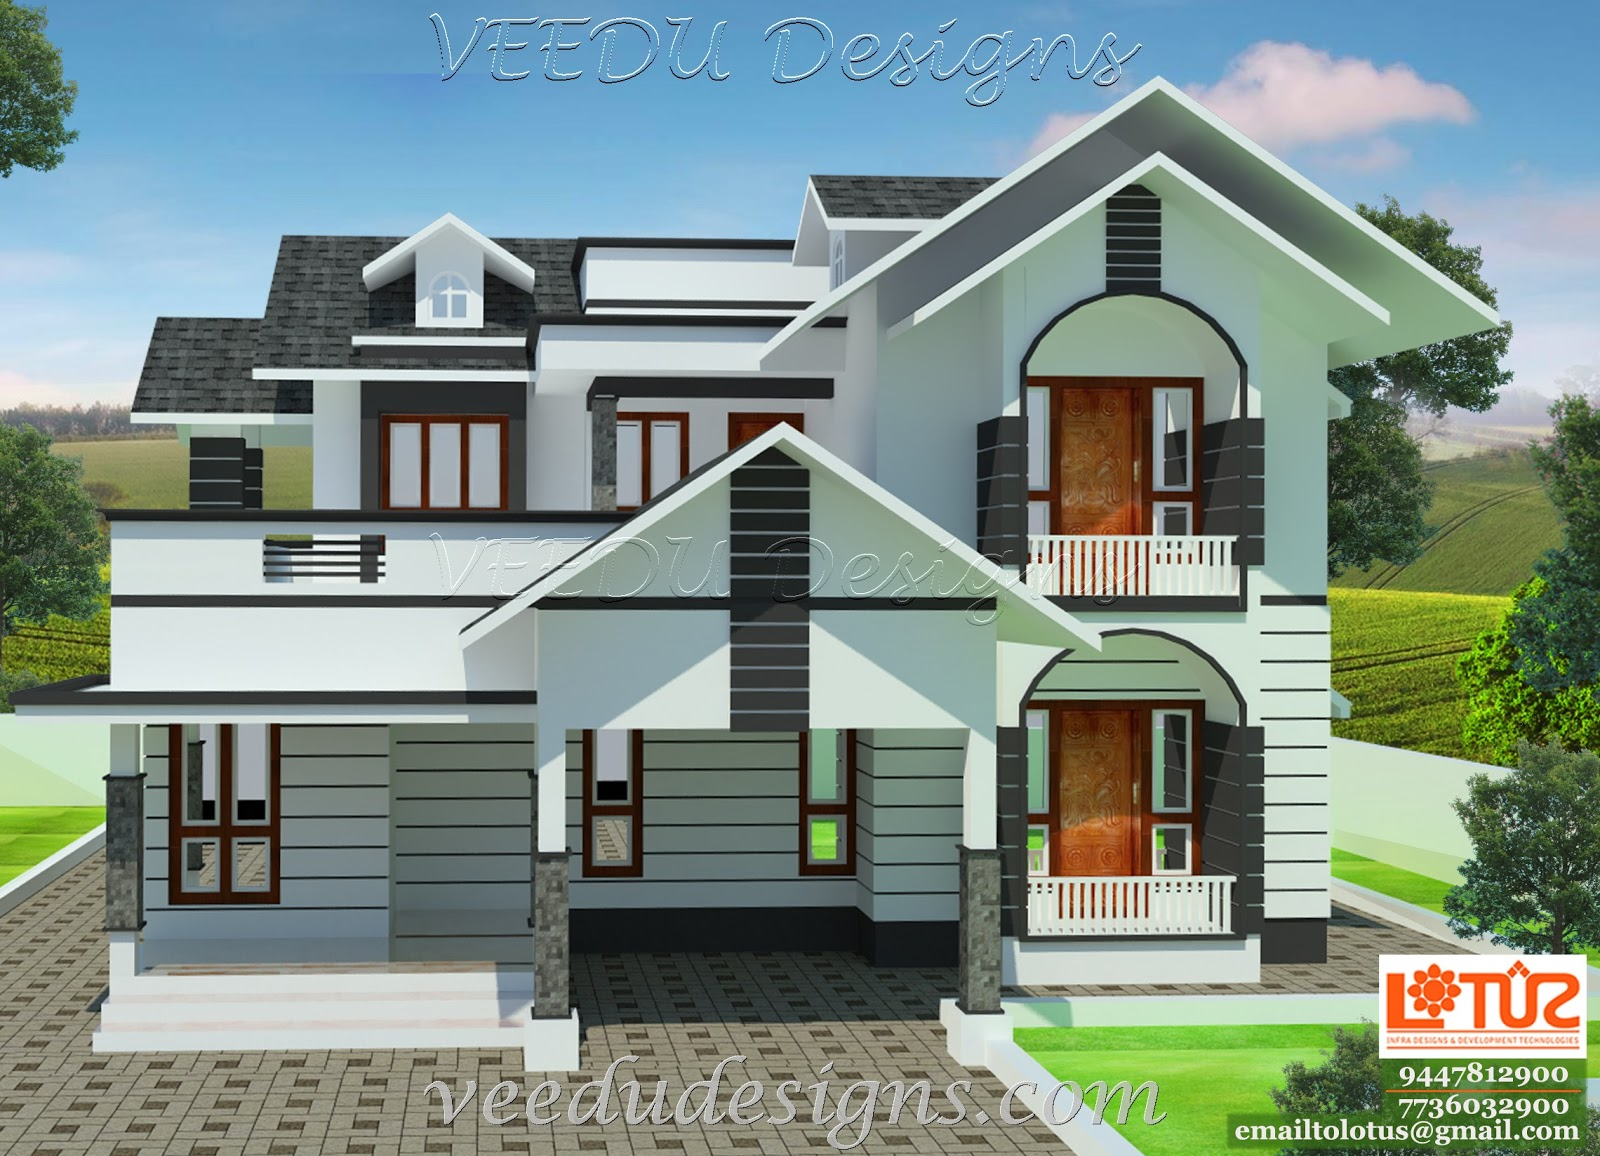 Veedu designs joy studio design gallery best design for Home plans gallery